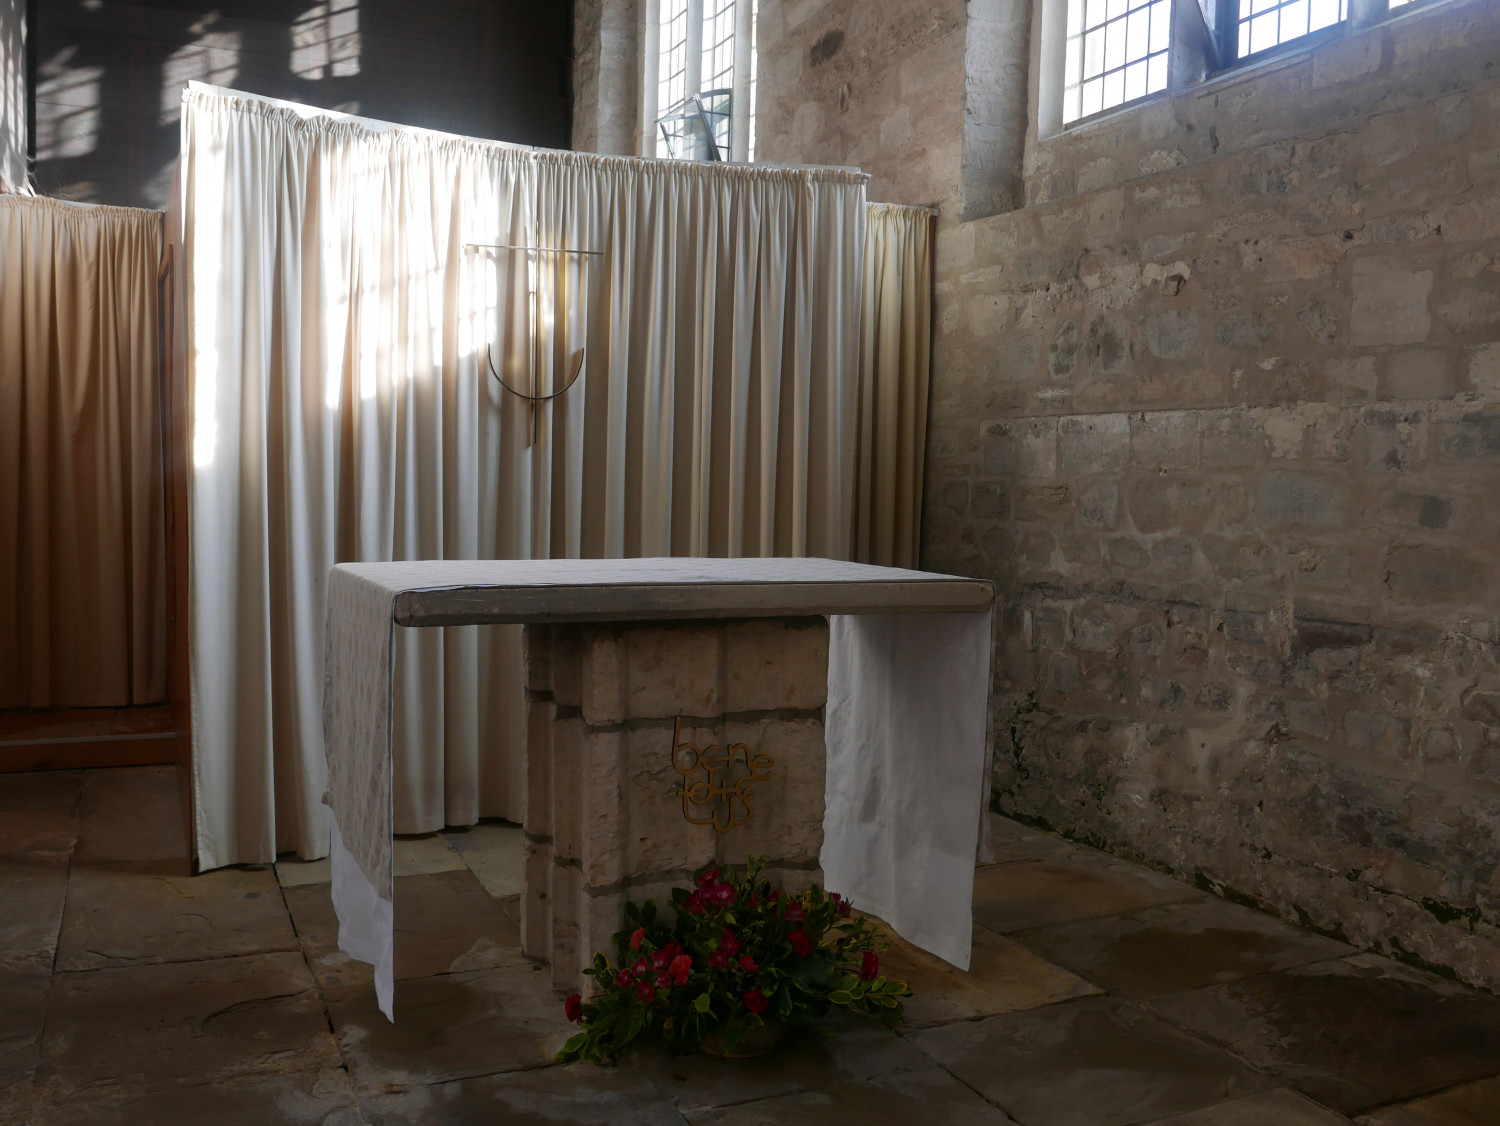 Photograph of an altar inside the Benedict Chapel at King's Lynn Minster. There is a white cloth on the stone altar and flowers in front. Behind is a white drape with a golden crucifix attached.